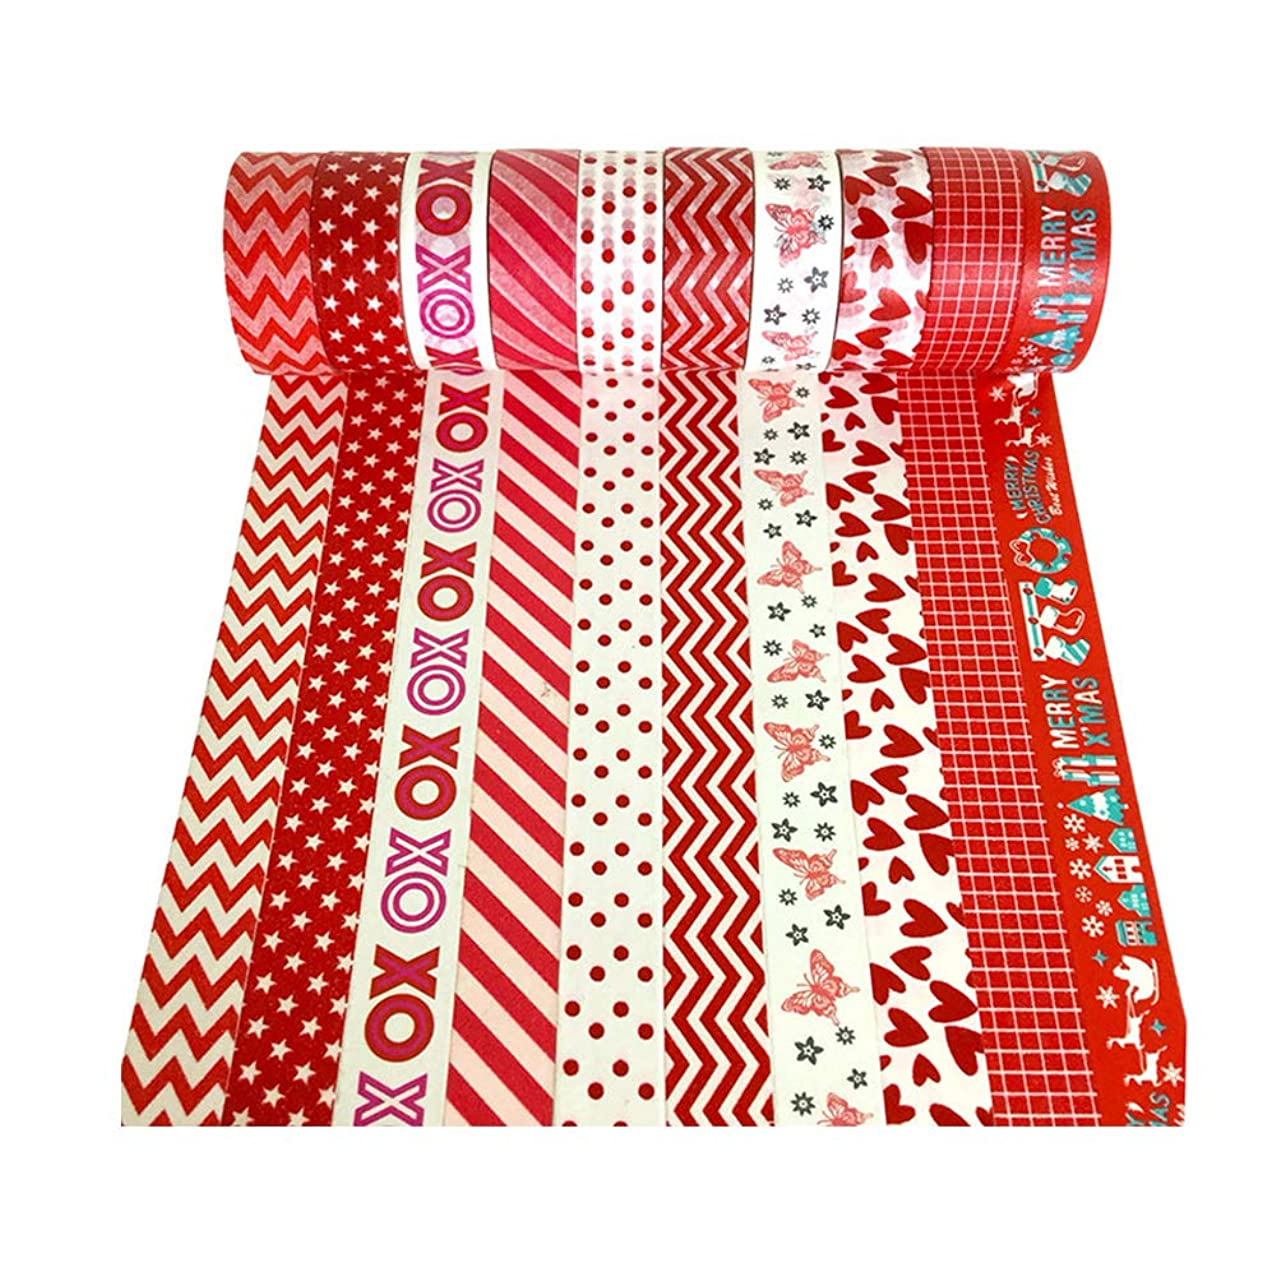 XYBAGS Christmas Decorative Washi Tape,Set of 10 Rolls, Assortment of Christmas Holiday Designs & Shapes (Style G)